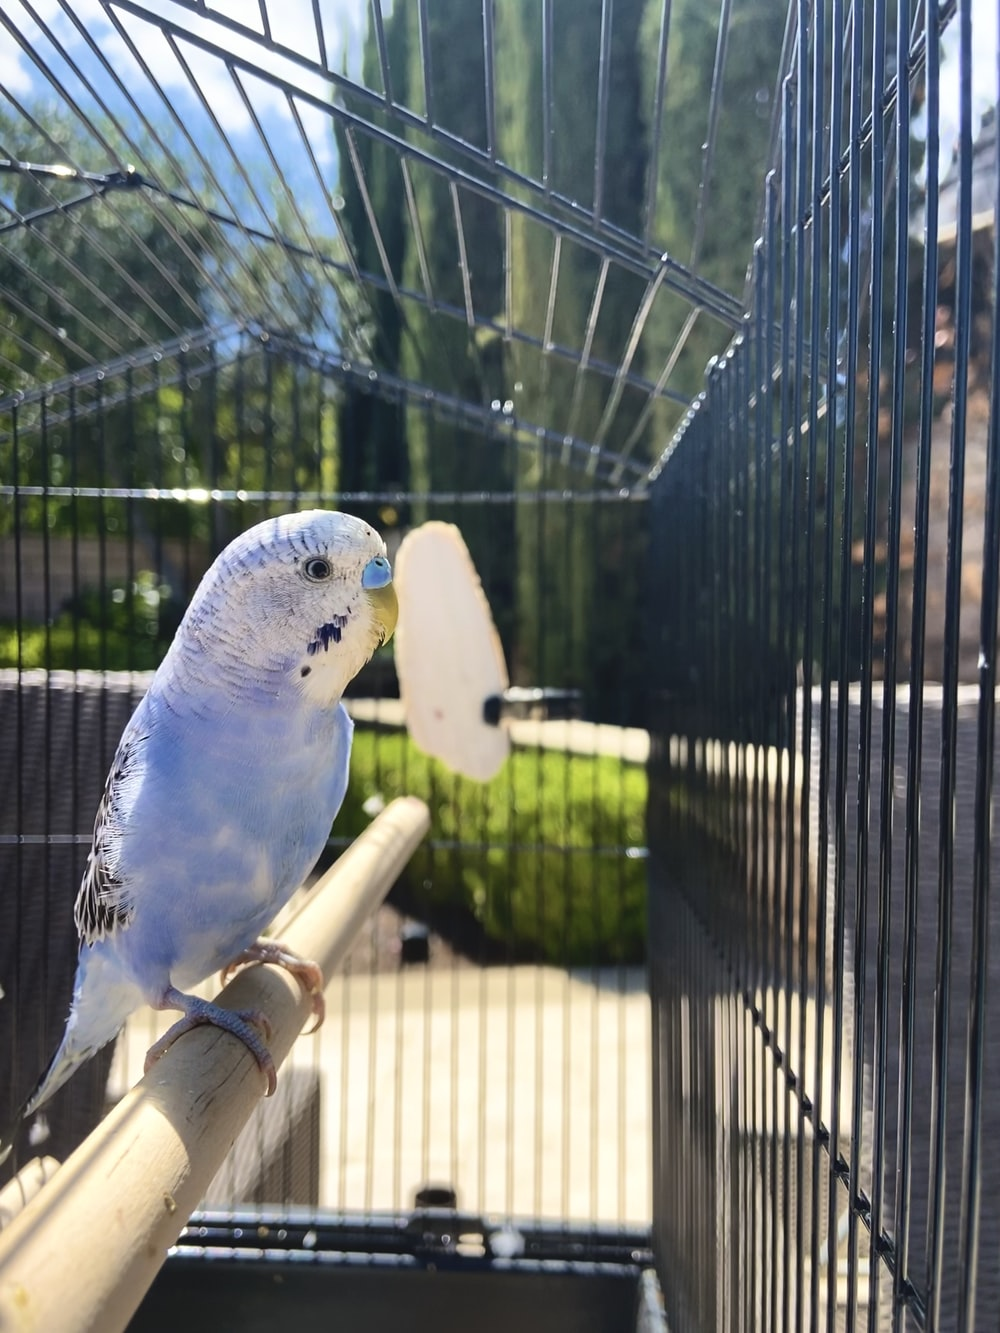 Birdcage Cleaning: Effortless And Time-Saving Methods